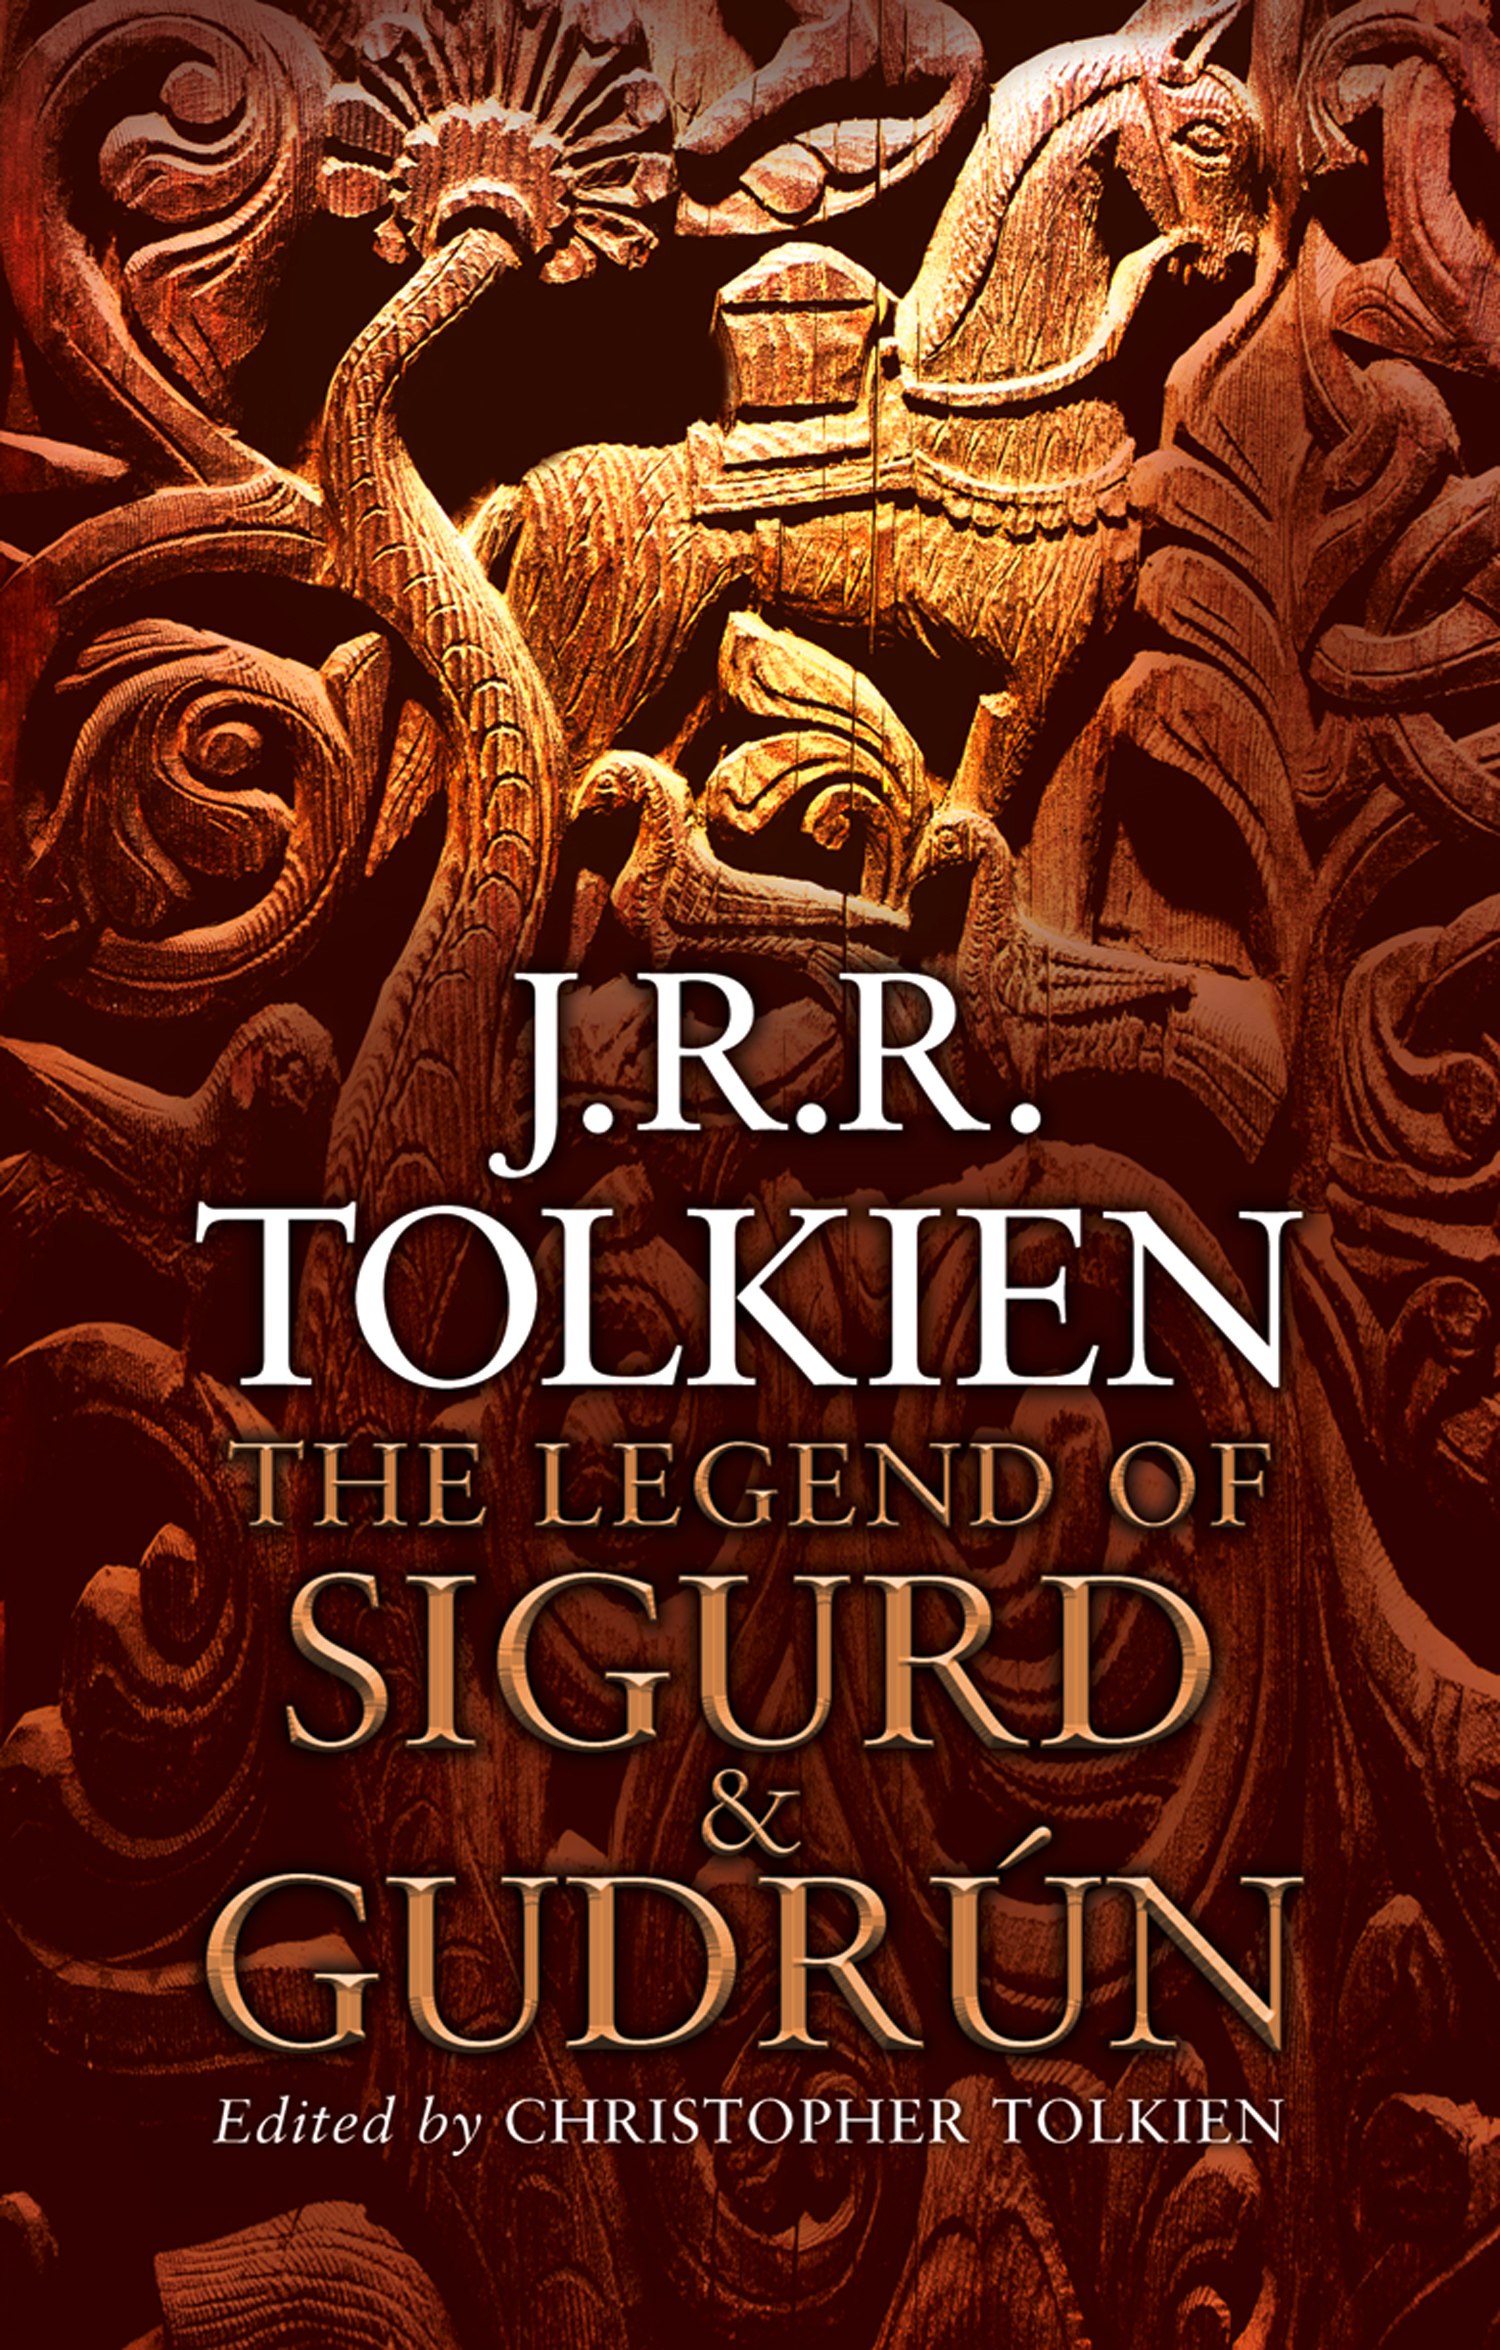 The Legend of Sigurd and Gudr�n